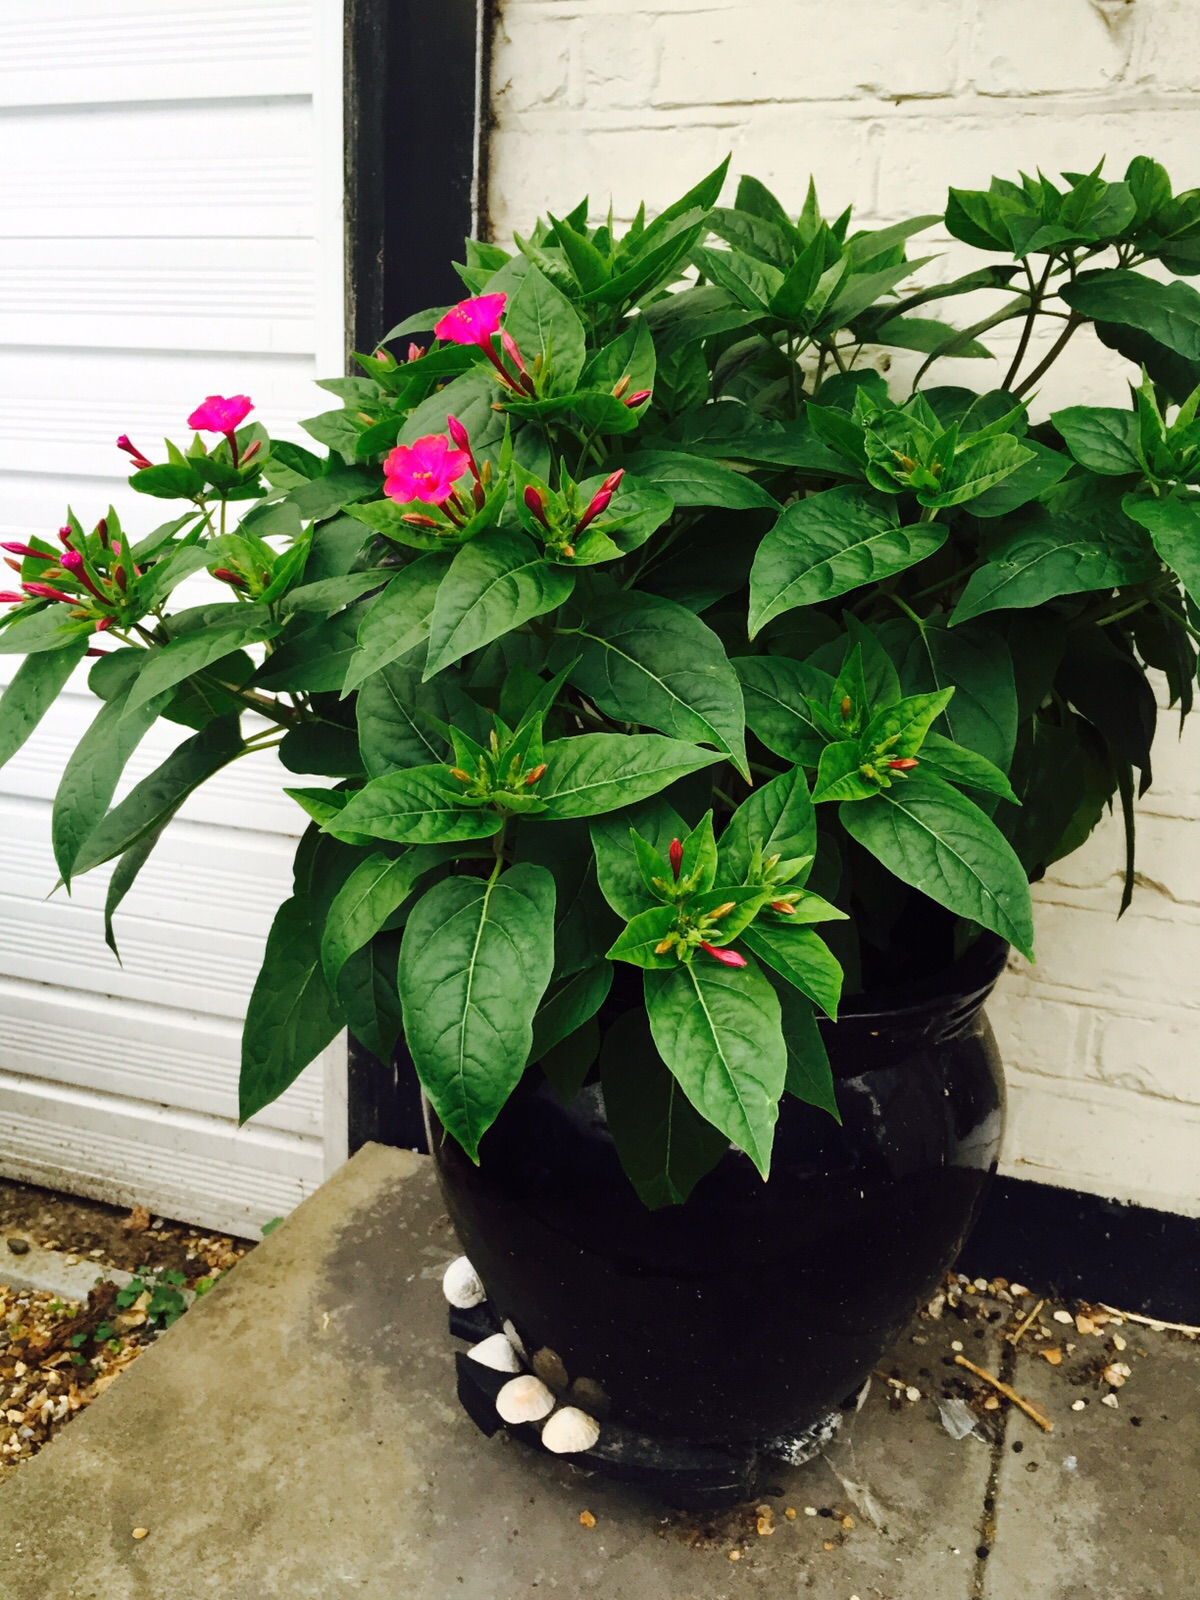 Mirabilis Jalapa with flowers emerging